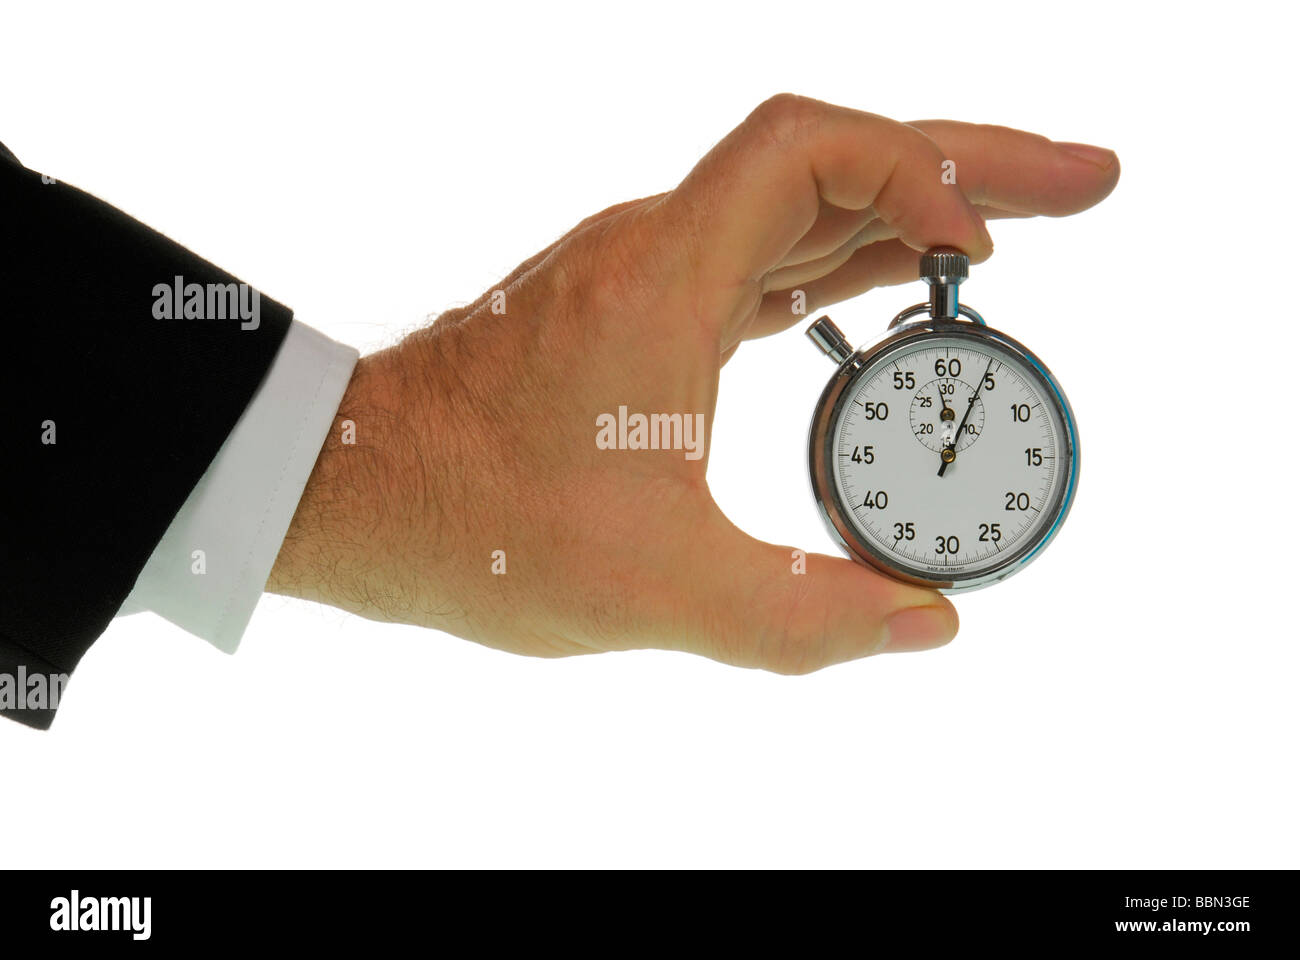 Manager-hand with stop watch, a symbolic image for time pressure - Stock Image